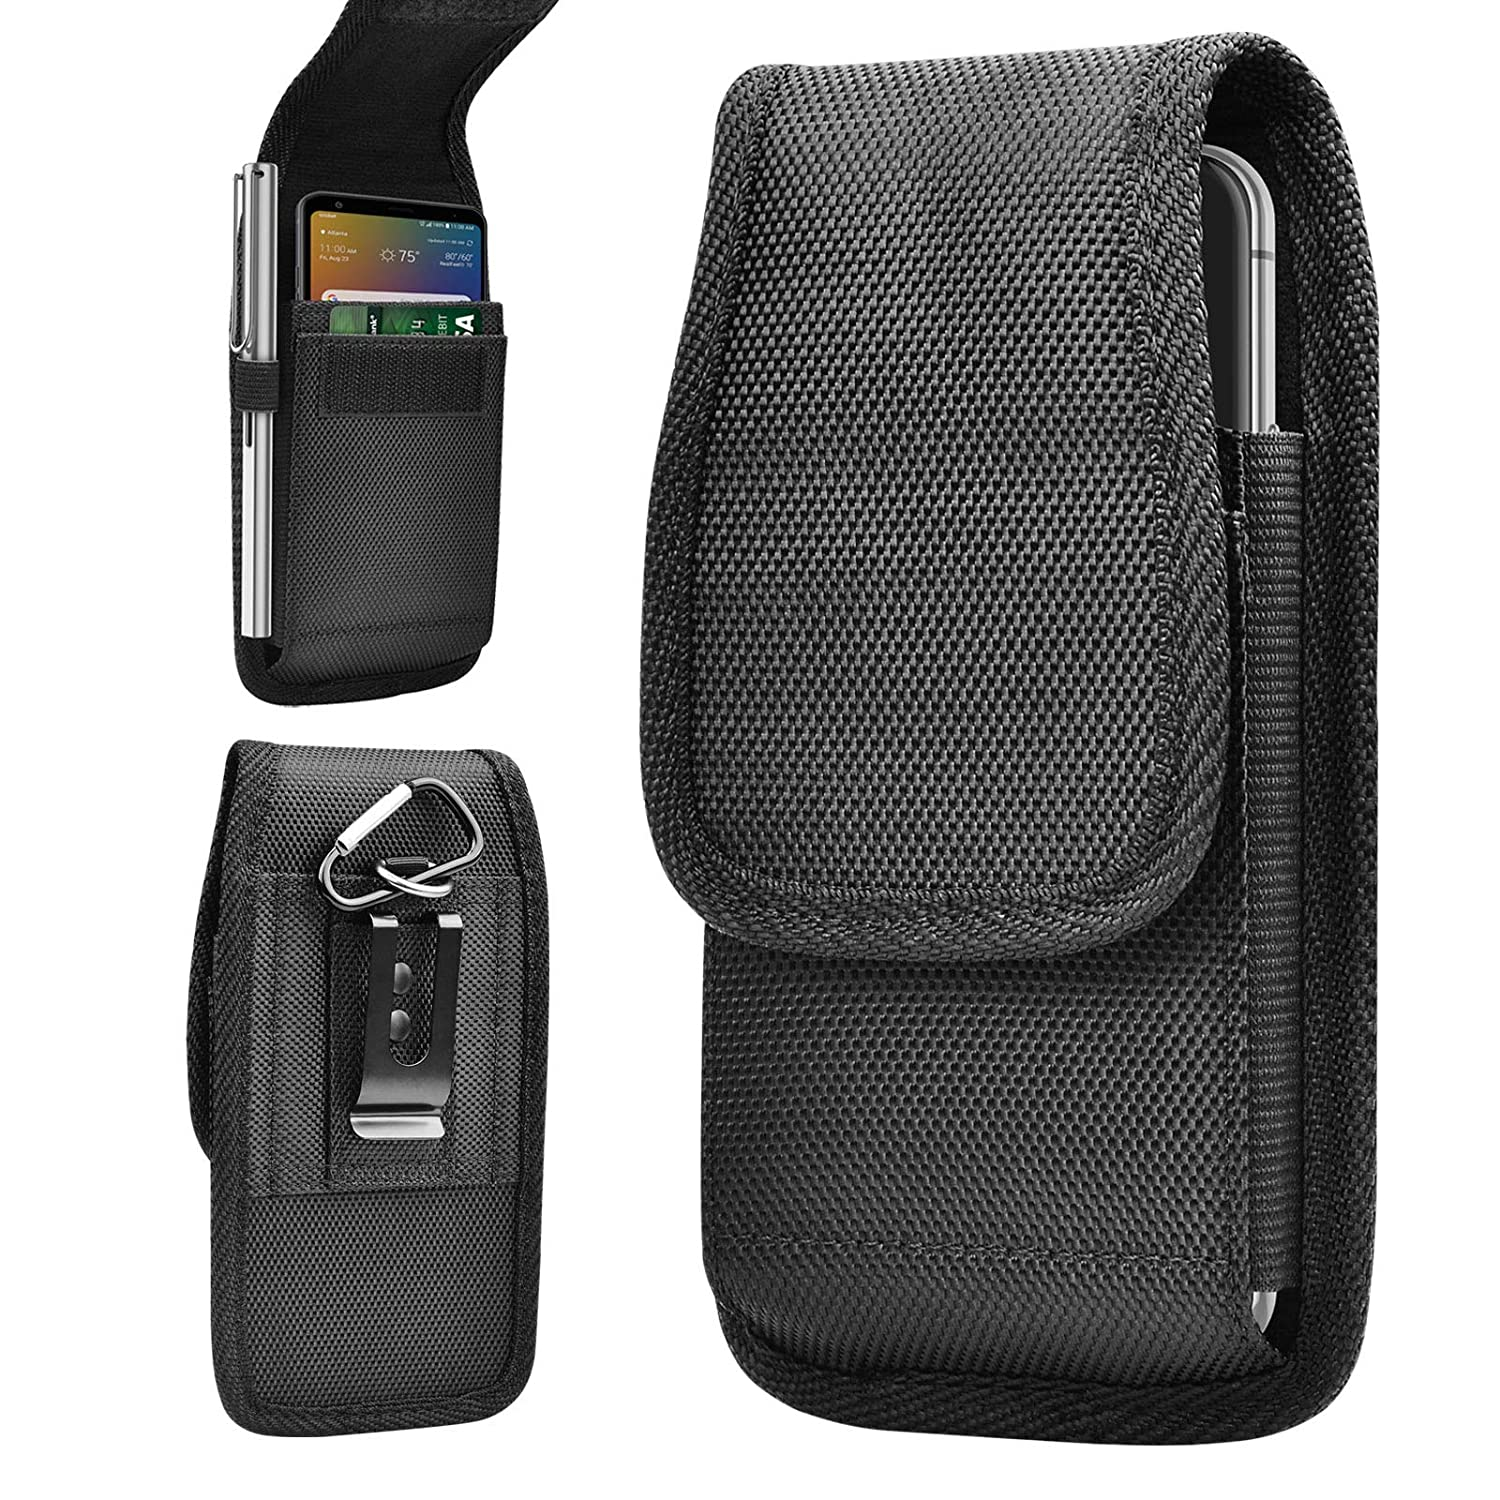 Tiflook Phone Holster Fit for LG Stylo 4 3/V40 V30 G8 G7 ThinQ/K30 Plus/K8 2018/Phoenix 4/Aristo 3 2 up to 6.7〞with Clip&Loops,Oxford Cell Phone Holder Pouch Belt Case Holster with Card Slot (Black)